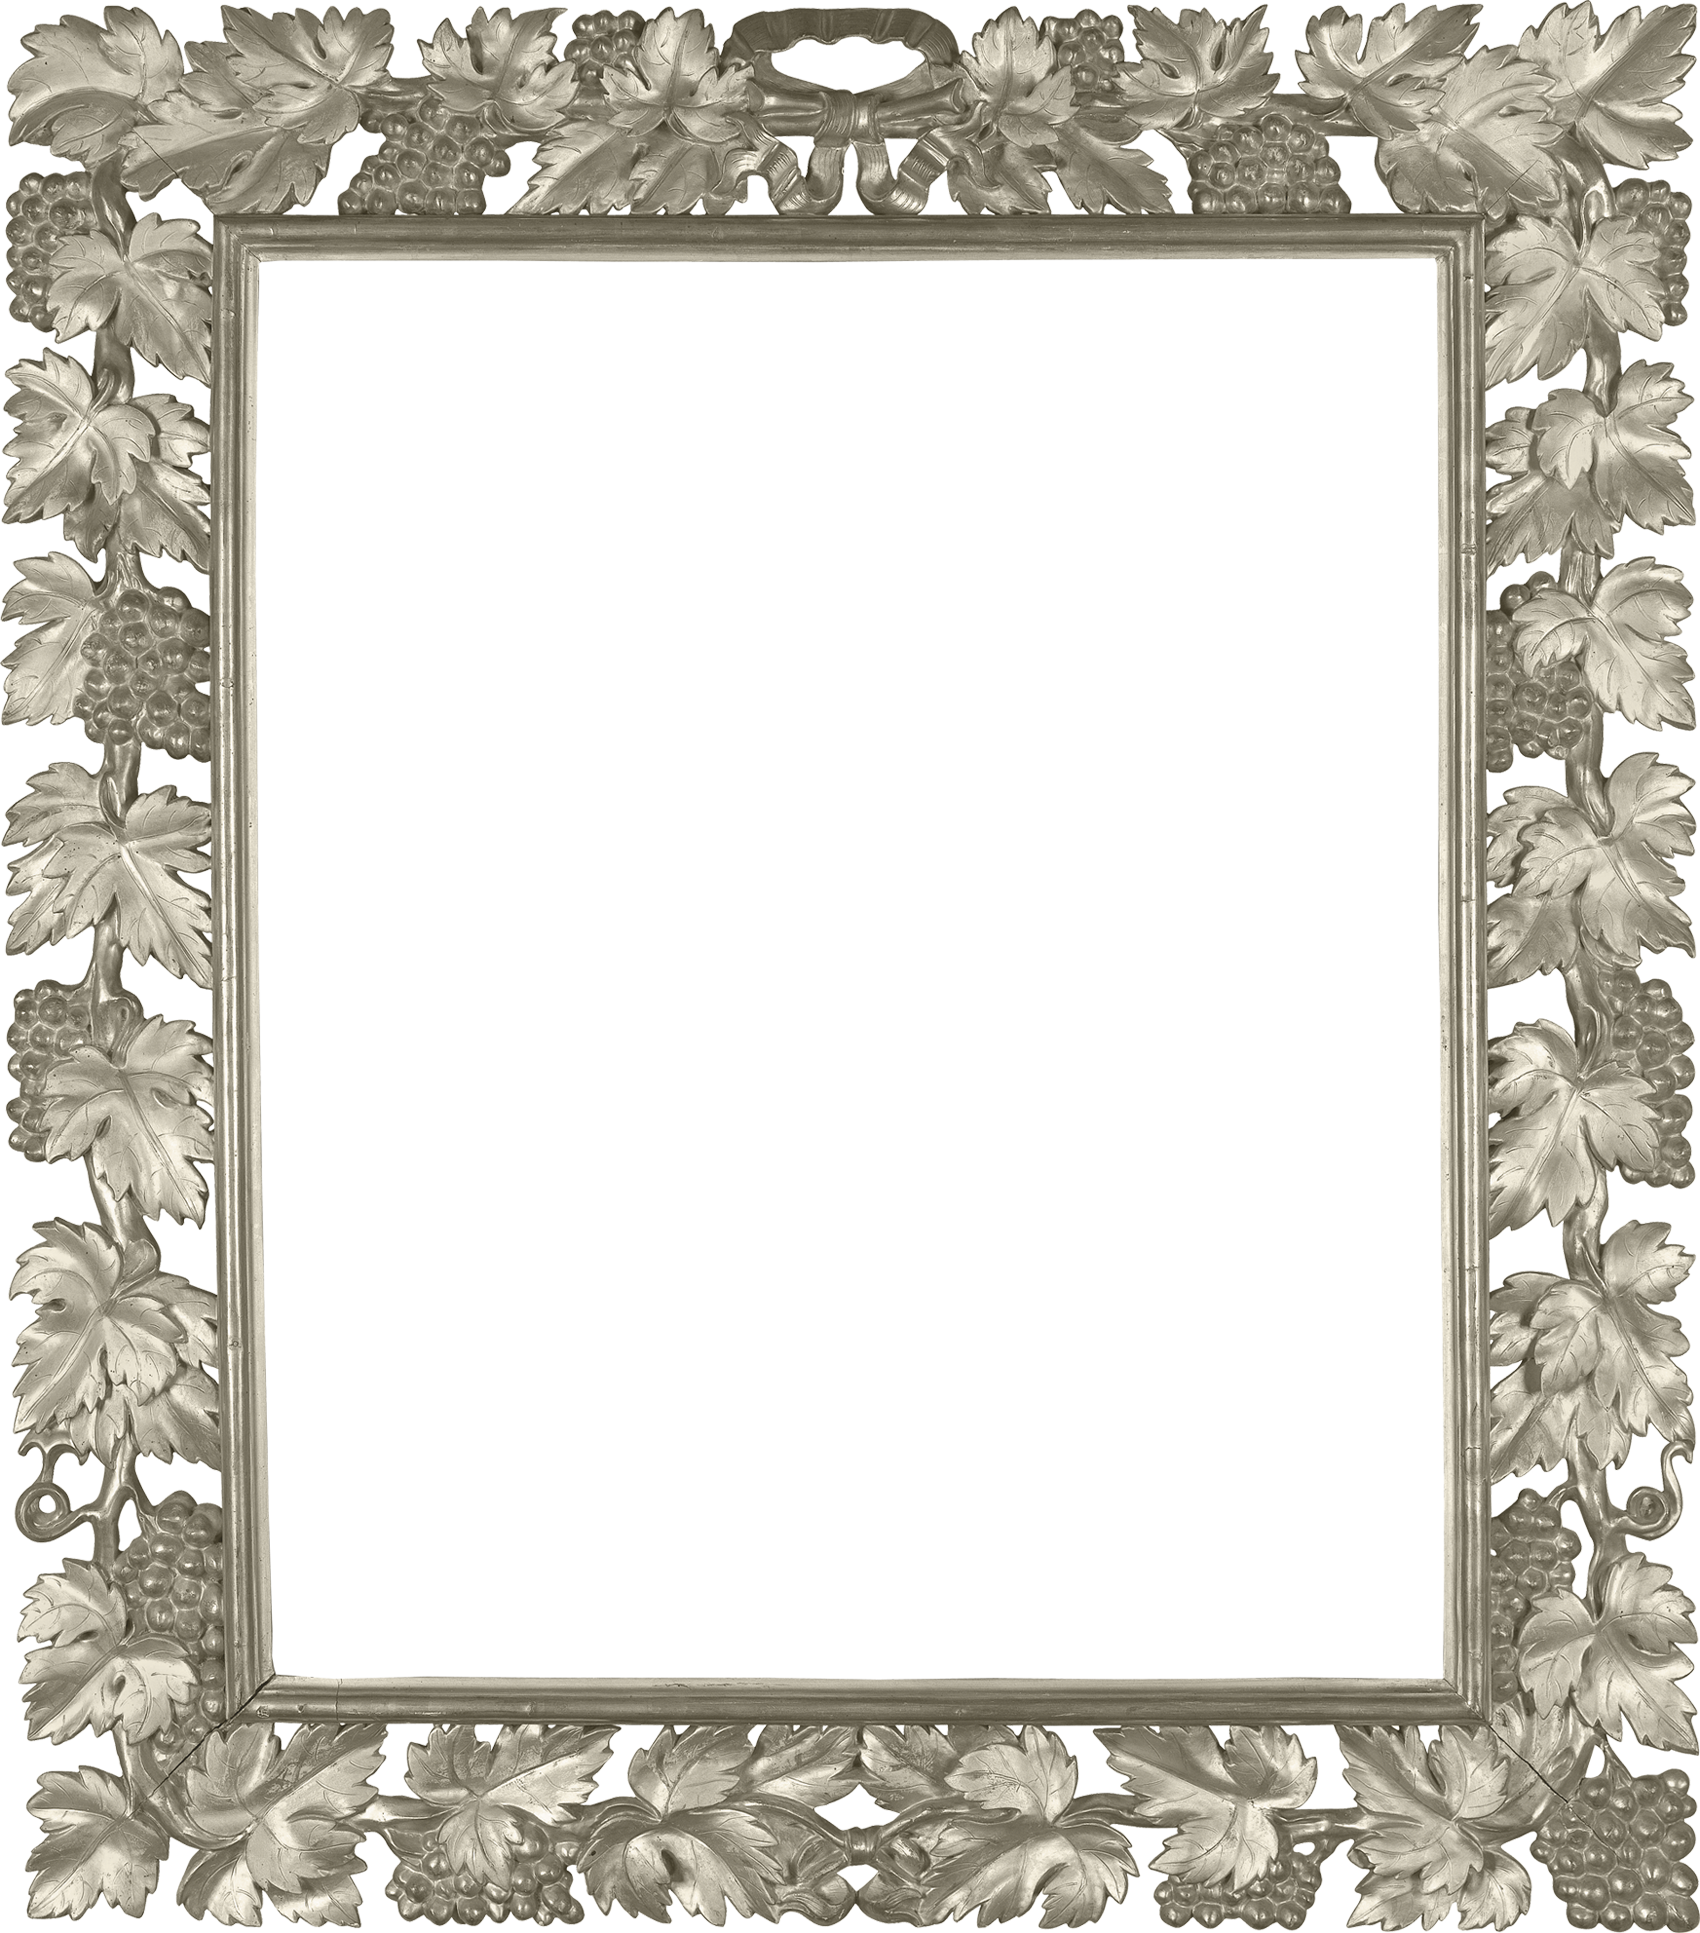 Silver transparent png photo. Clipart gallery photograph frame